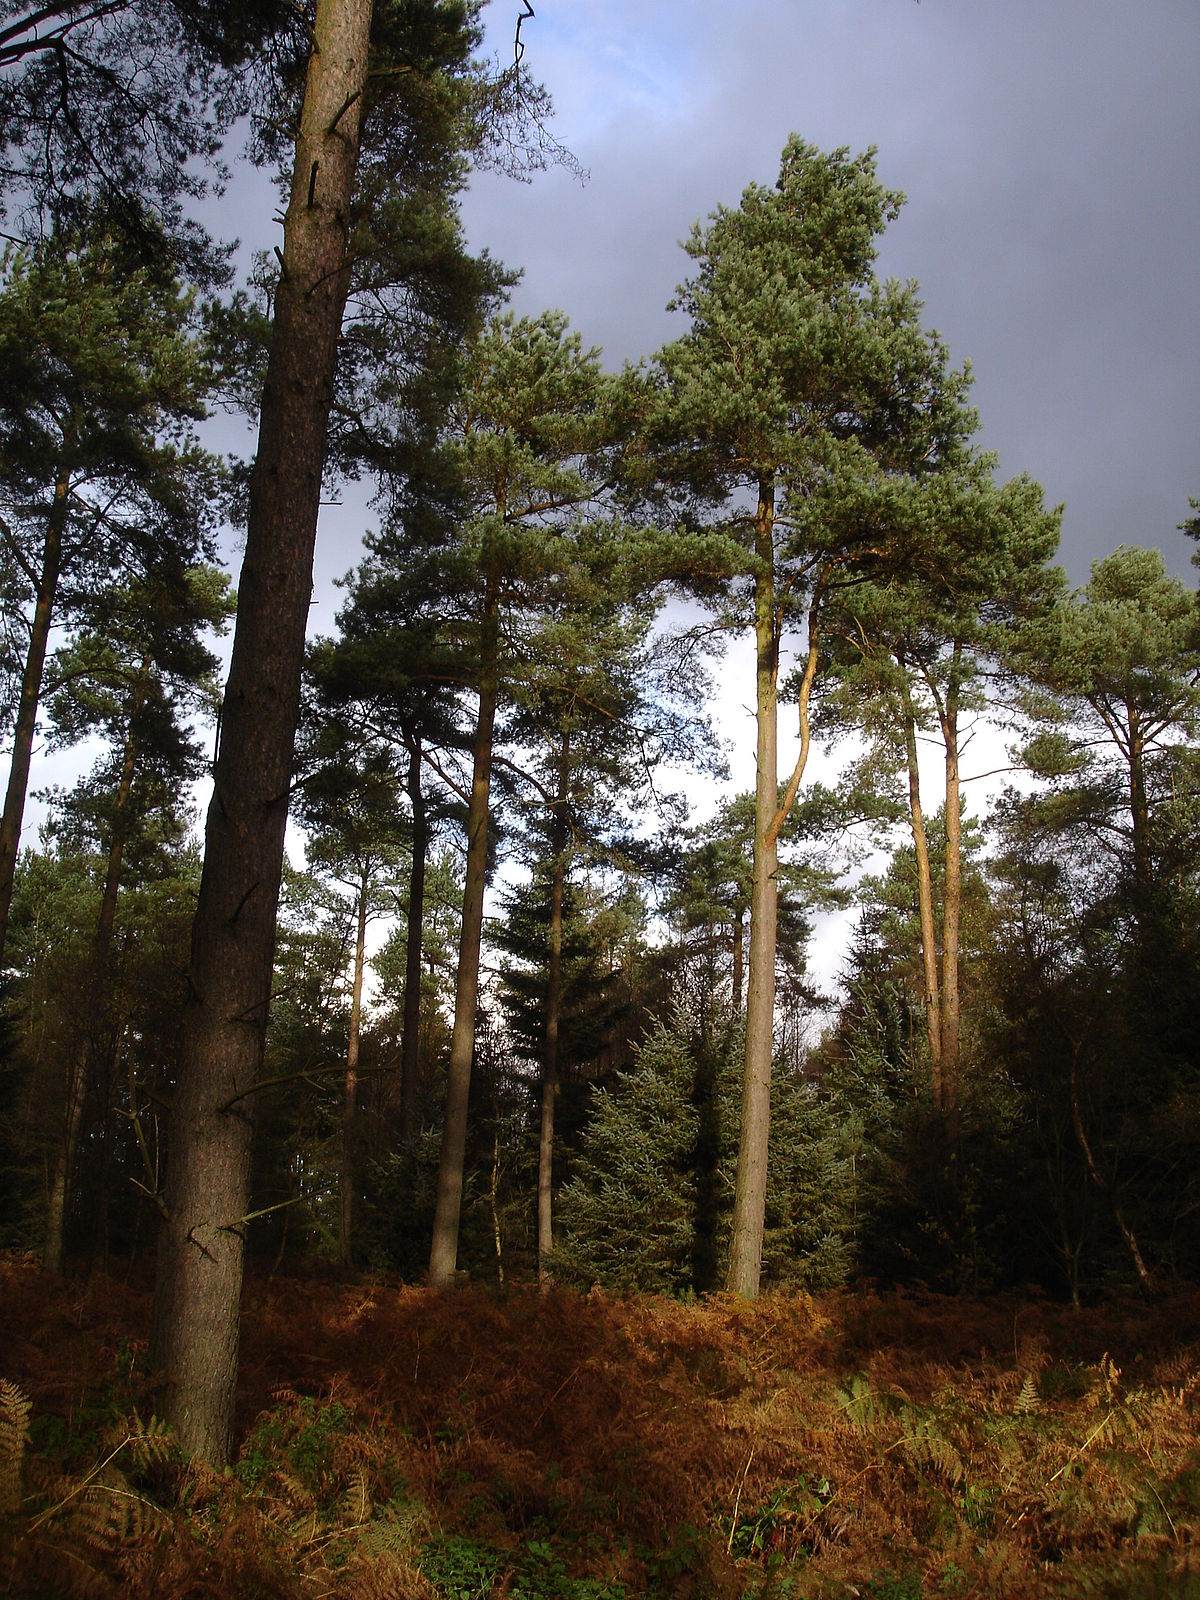 Dalby Forest Wikipedia